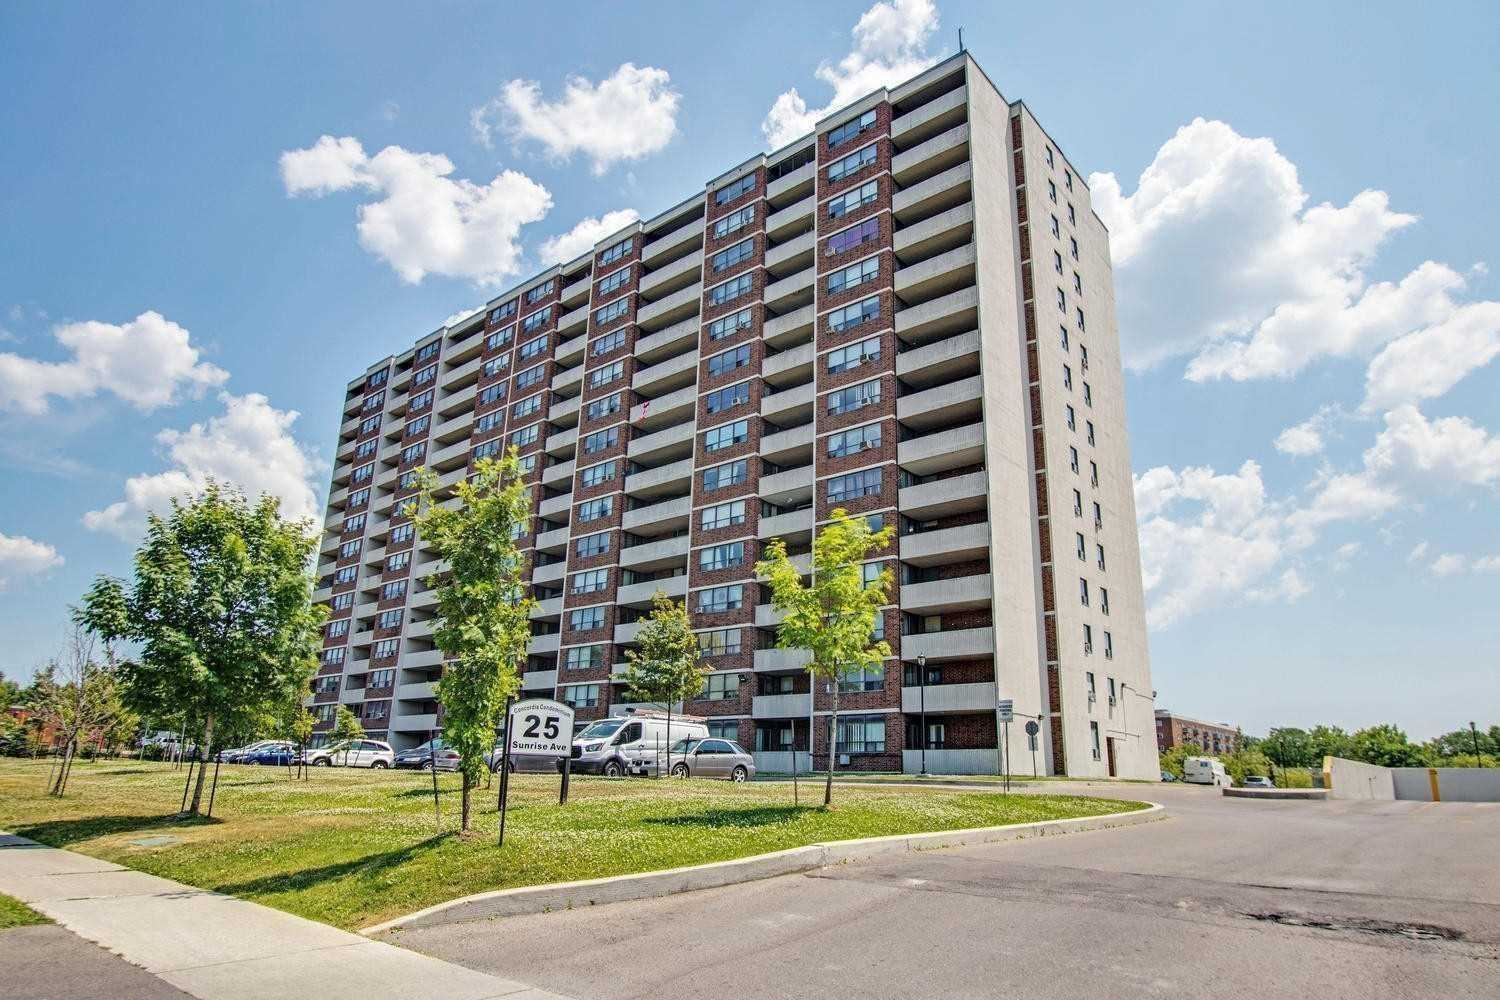 25 Sunrise Ave, Toronto, Ontario M4A2S2, 3 Bedrooms Bedrooms, 6 Rooms Rooms,2 BathroomsBathrooms,Condo Apt,For Sale,Sunrise,C4915609